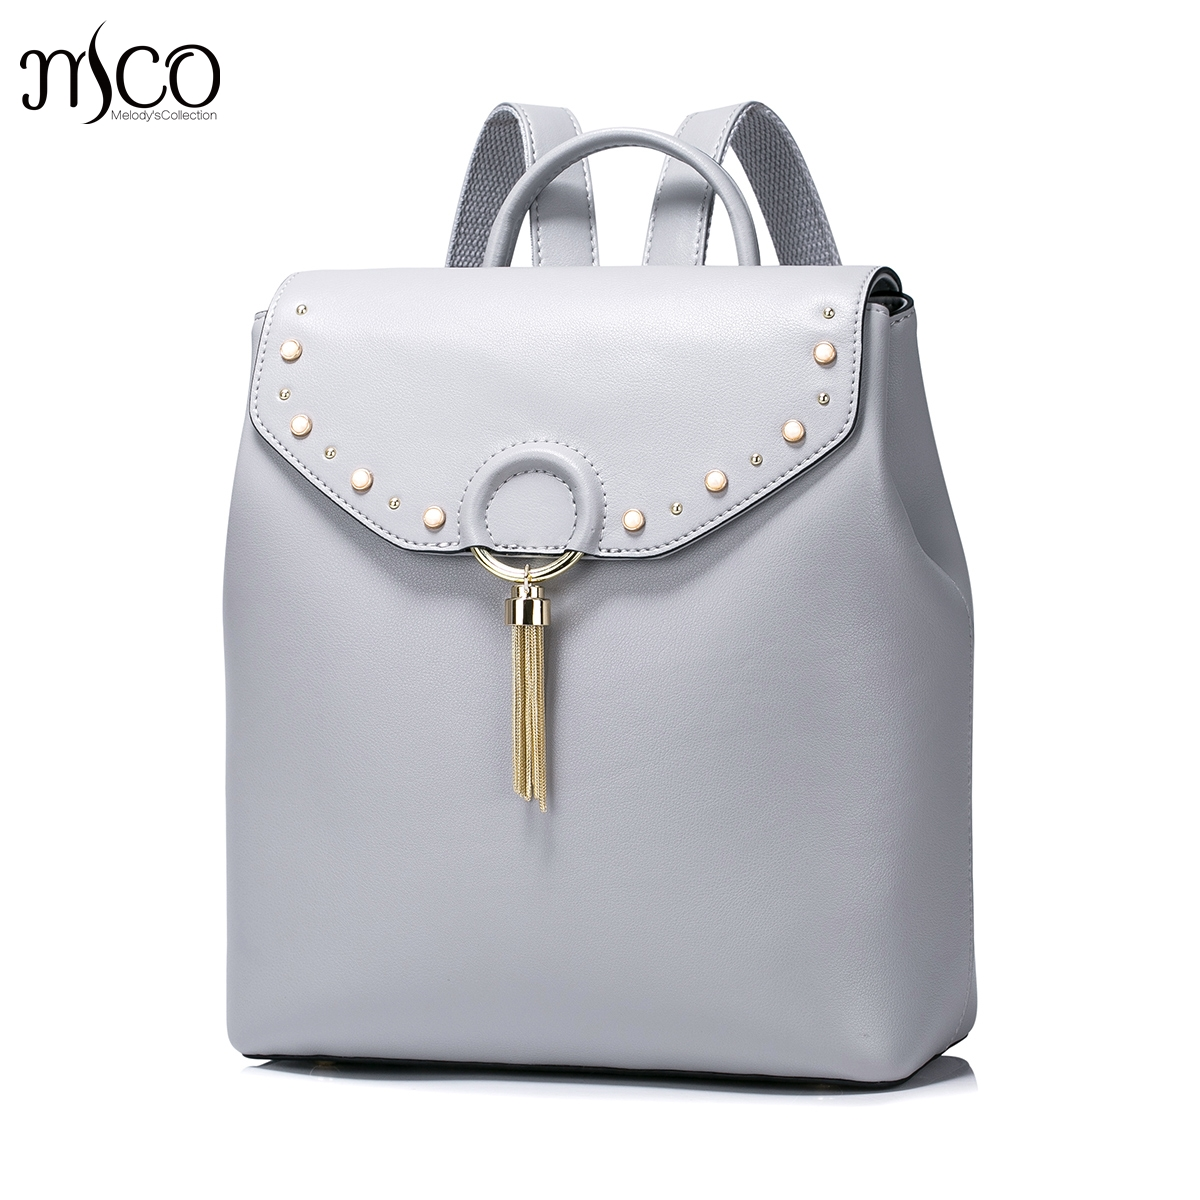 High Quality Fashion Genuine Leather Soft Backpack For Women Tassels Pearls Ring Diamond Shoulder Bags School bag Daypack Travel mma backpack box ing shoulder ufc memory gifts daypack for friends